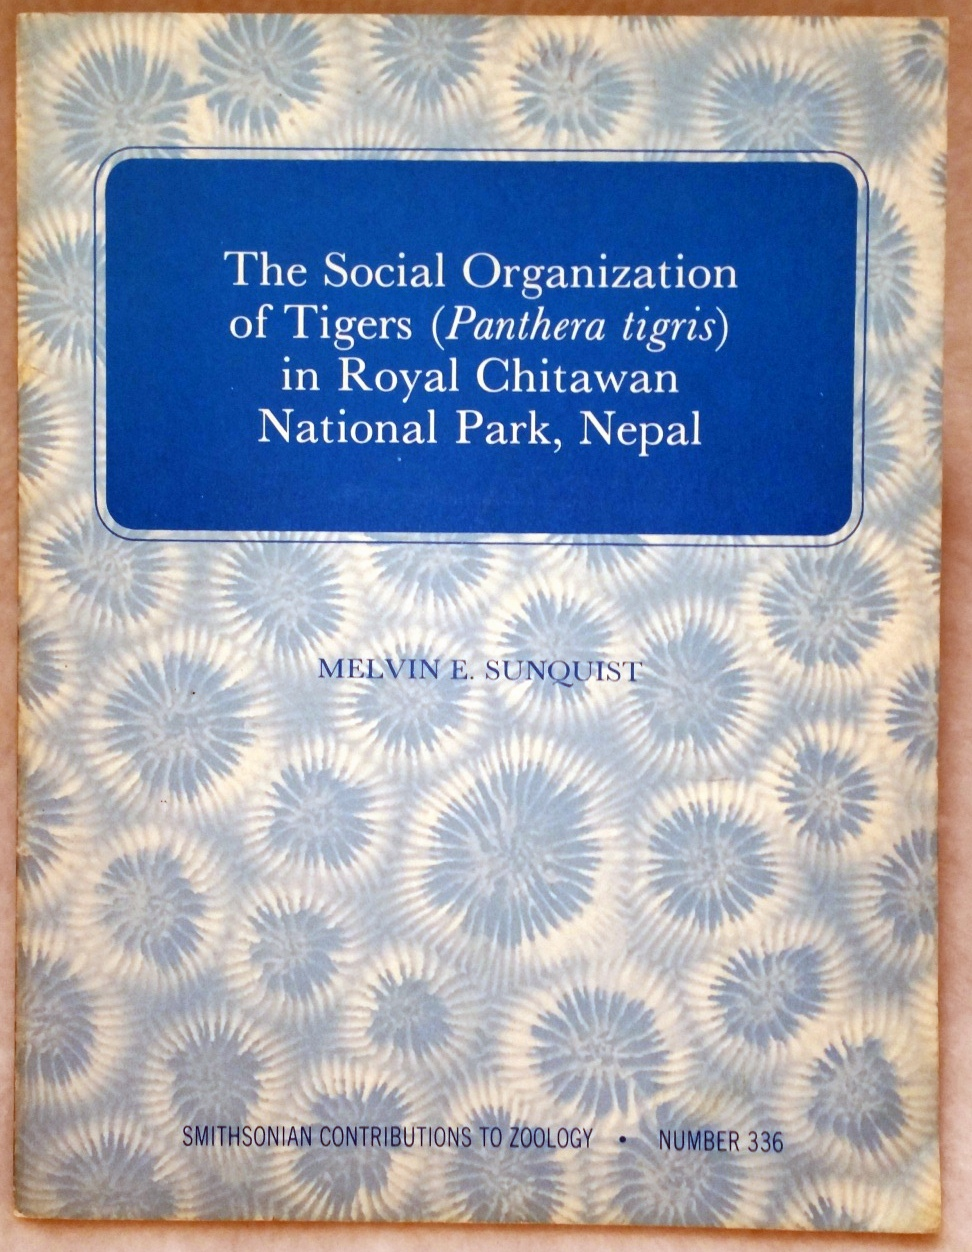 Image for The Social Organization of Tigers (Panthera tigris) in Royal Chitawan National Park, Nepal (Smithsonian Contributions to Zoology, Number 336)